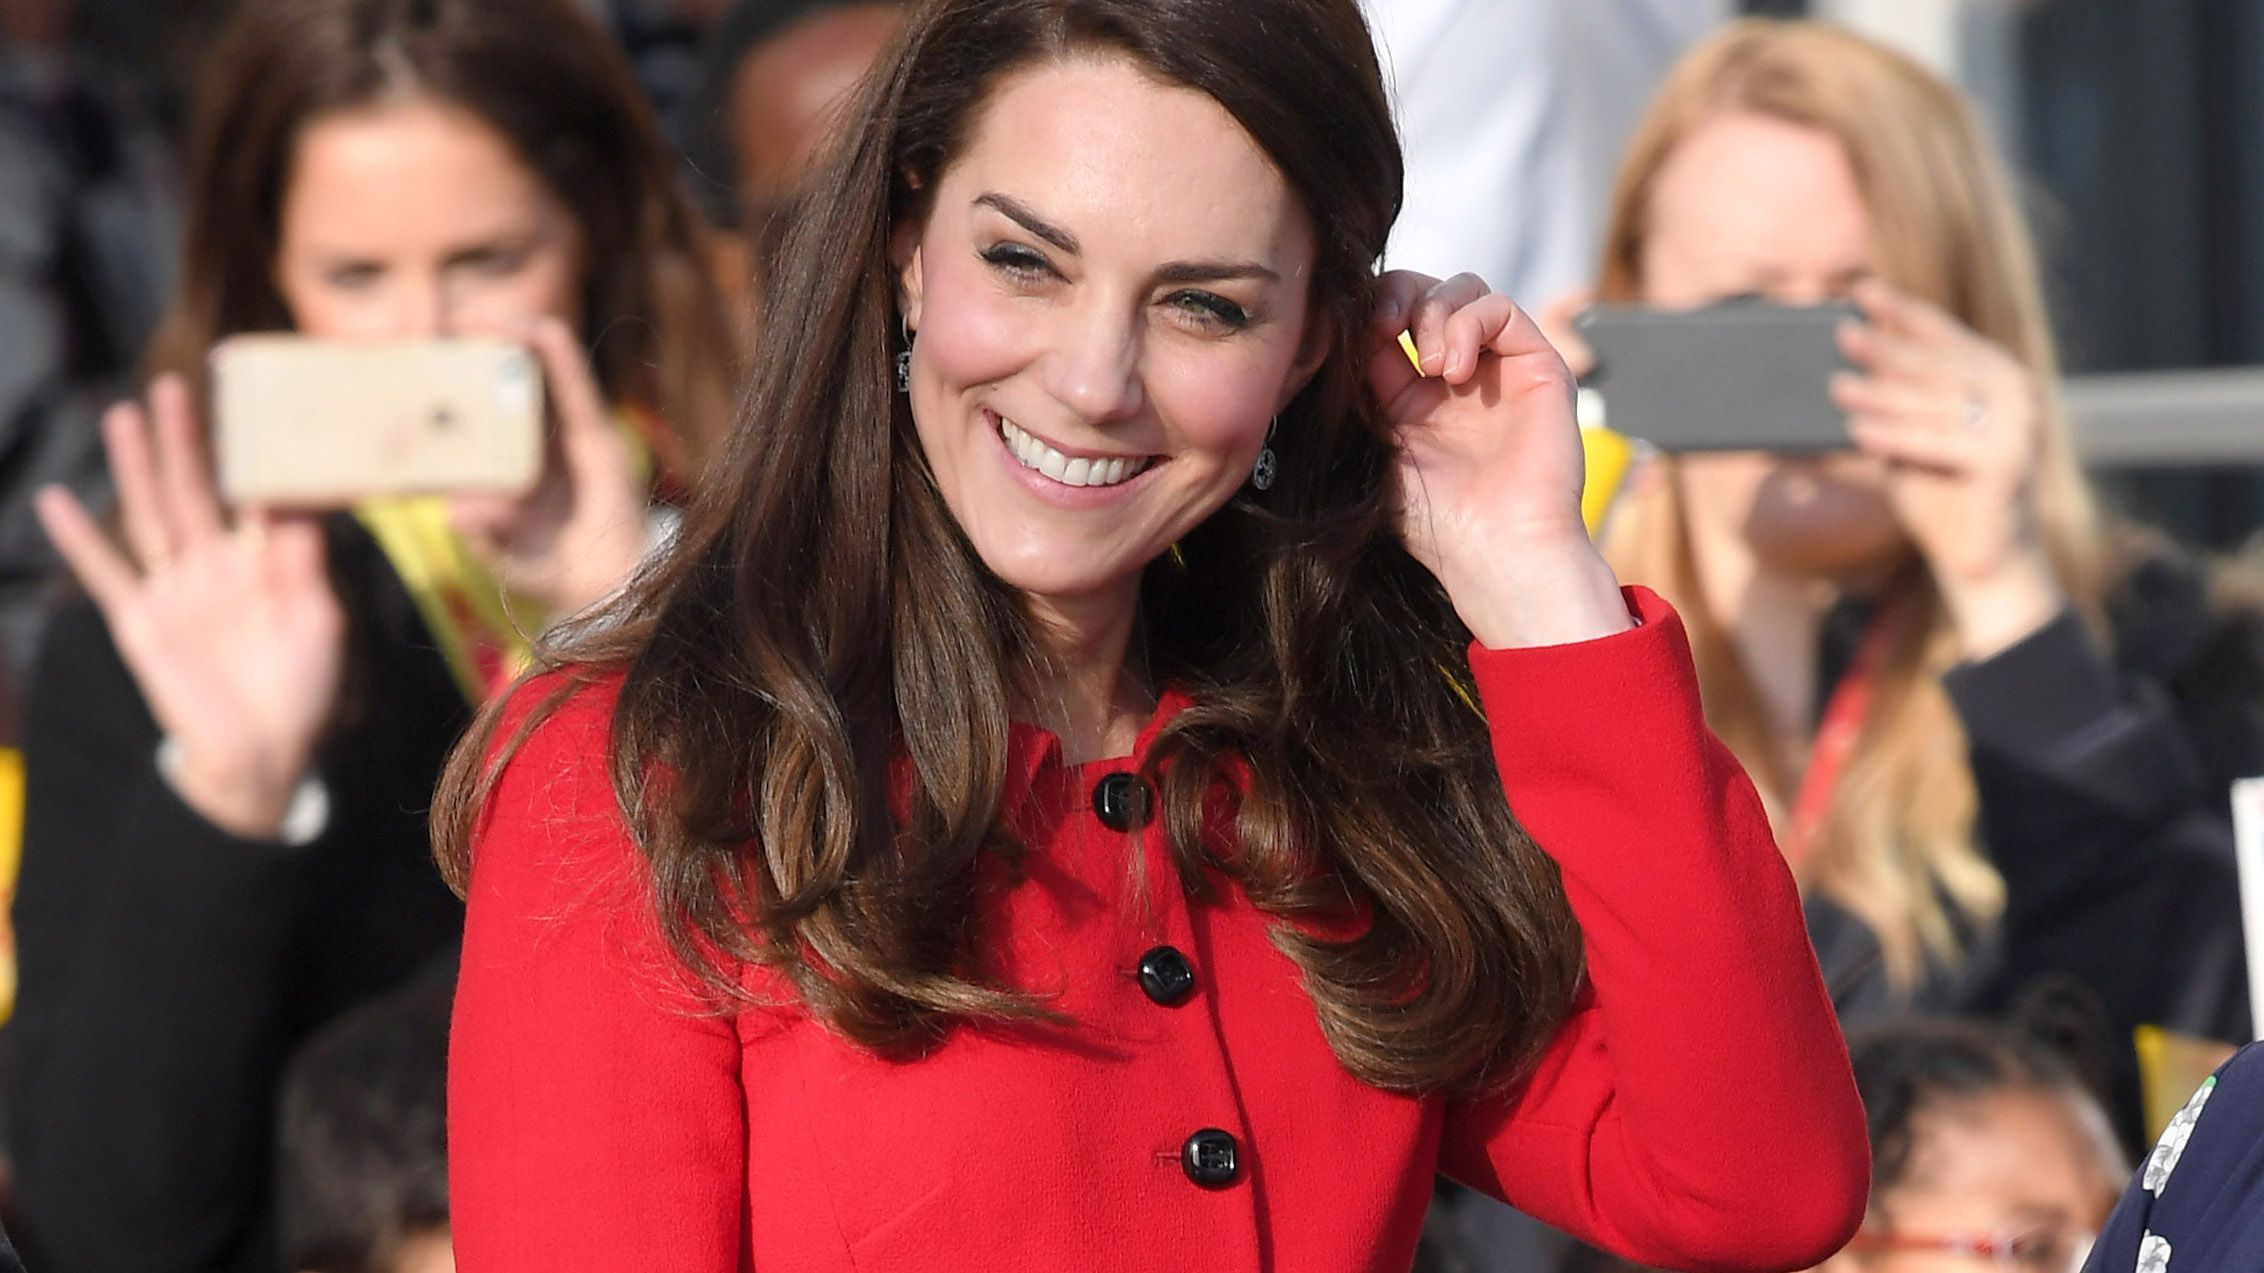 The Duchess of Cambridge's favourite red dress